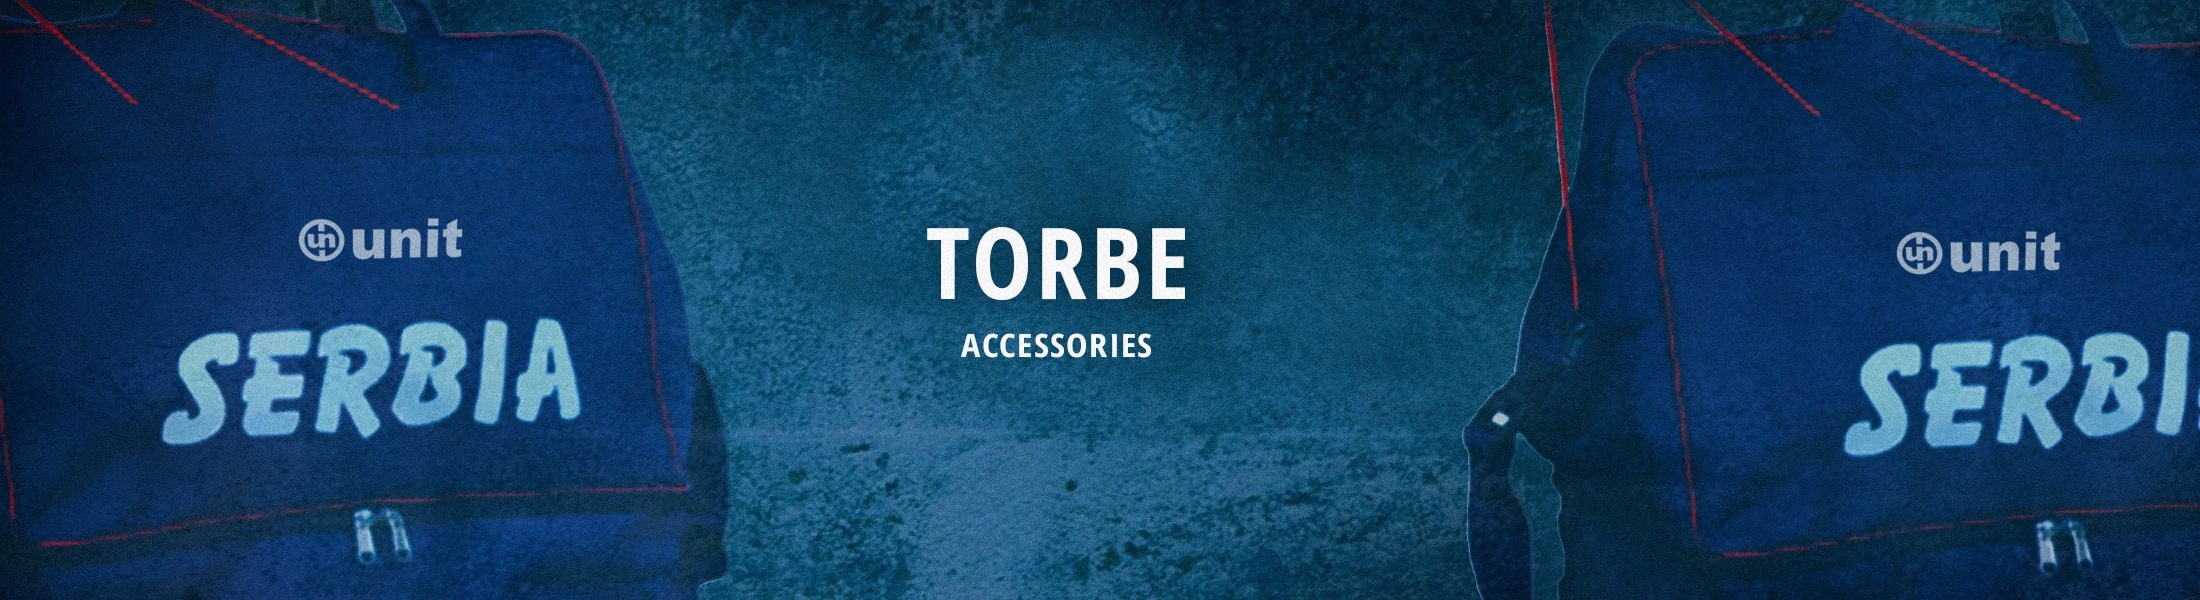 Accessories - Torbe